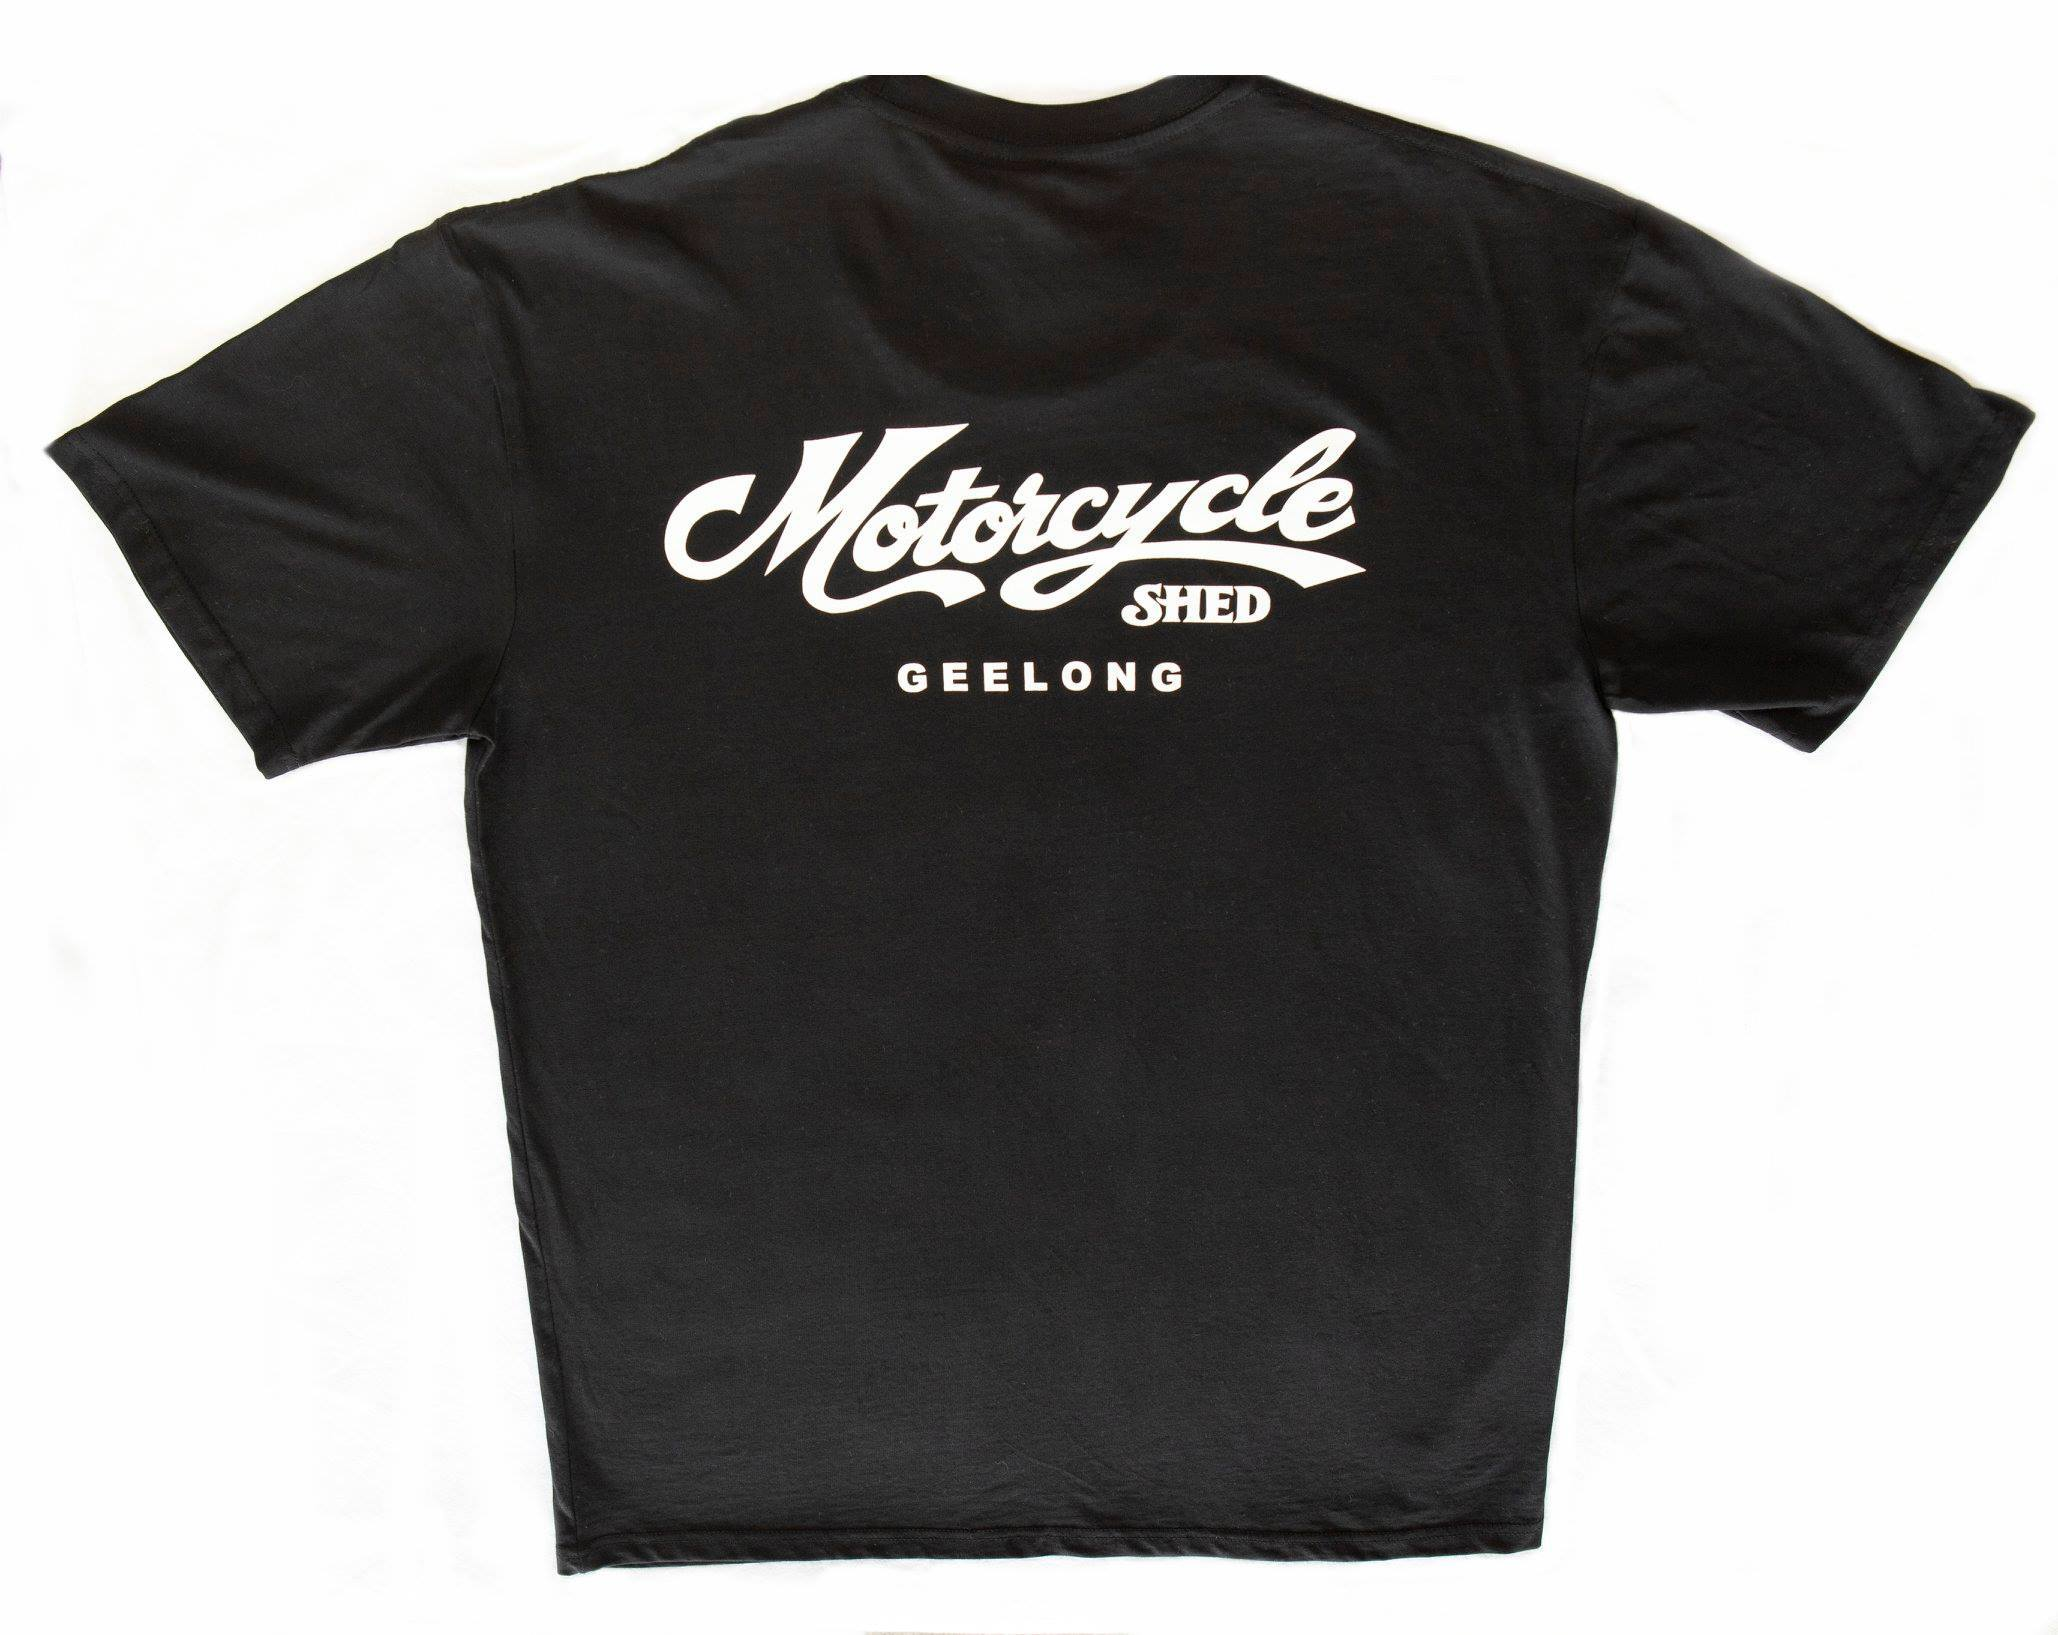 Motorcycle Shed - Italian Night 100% Cotton Tee